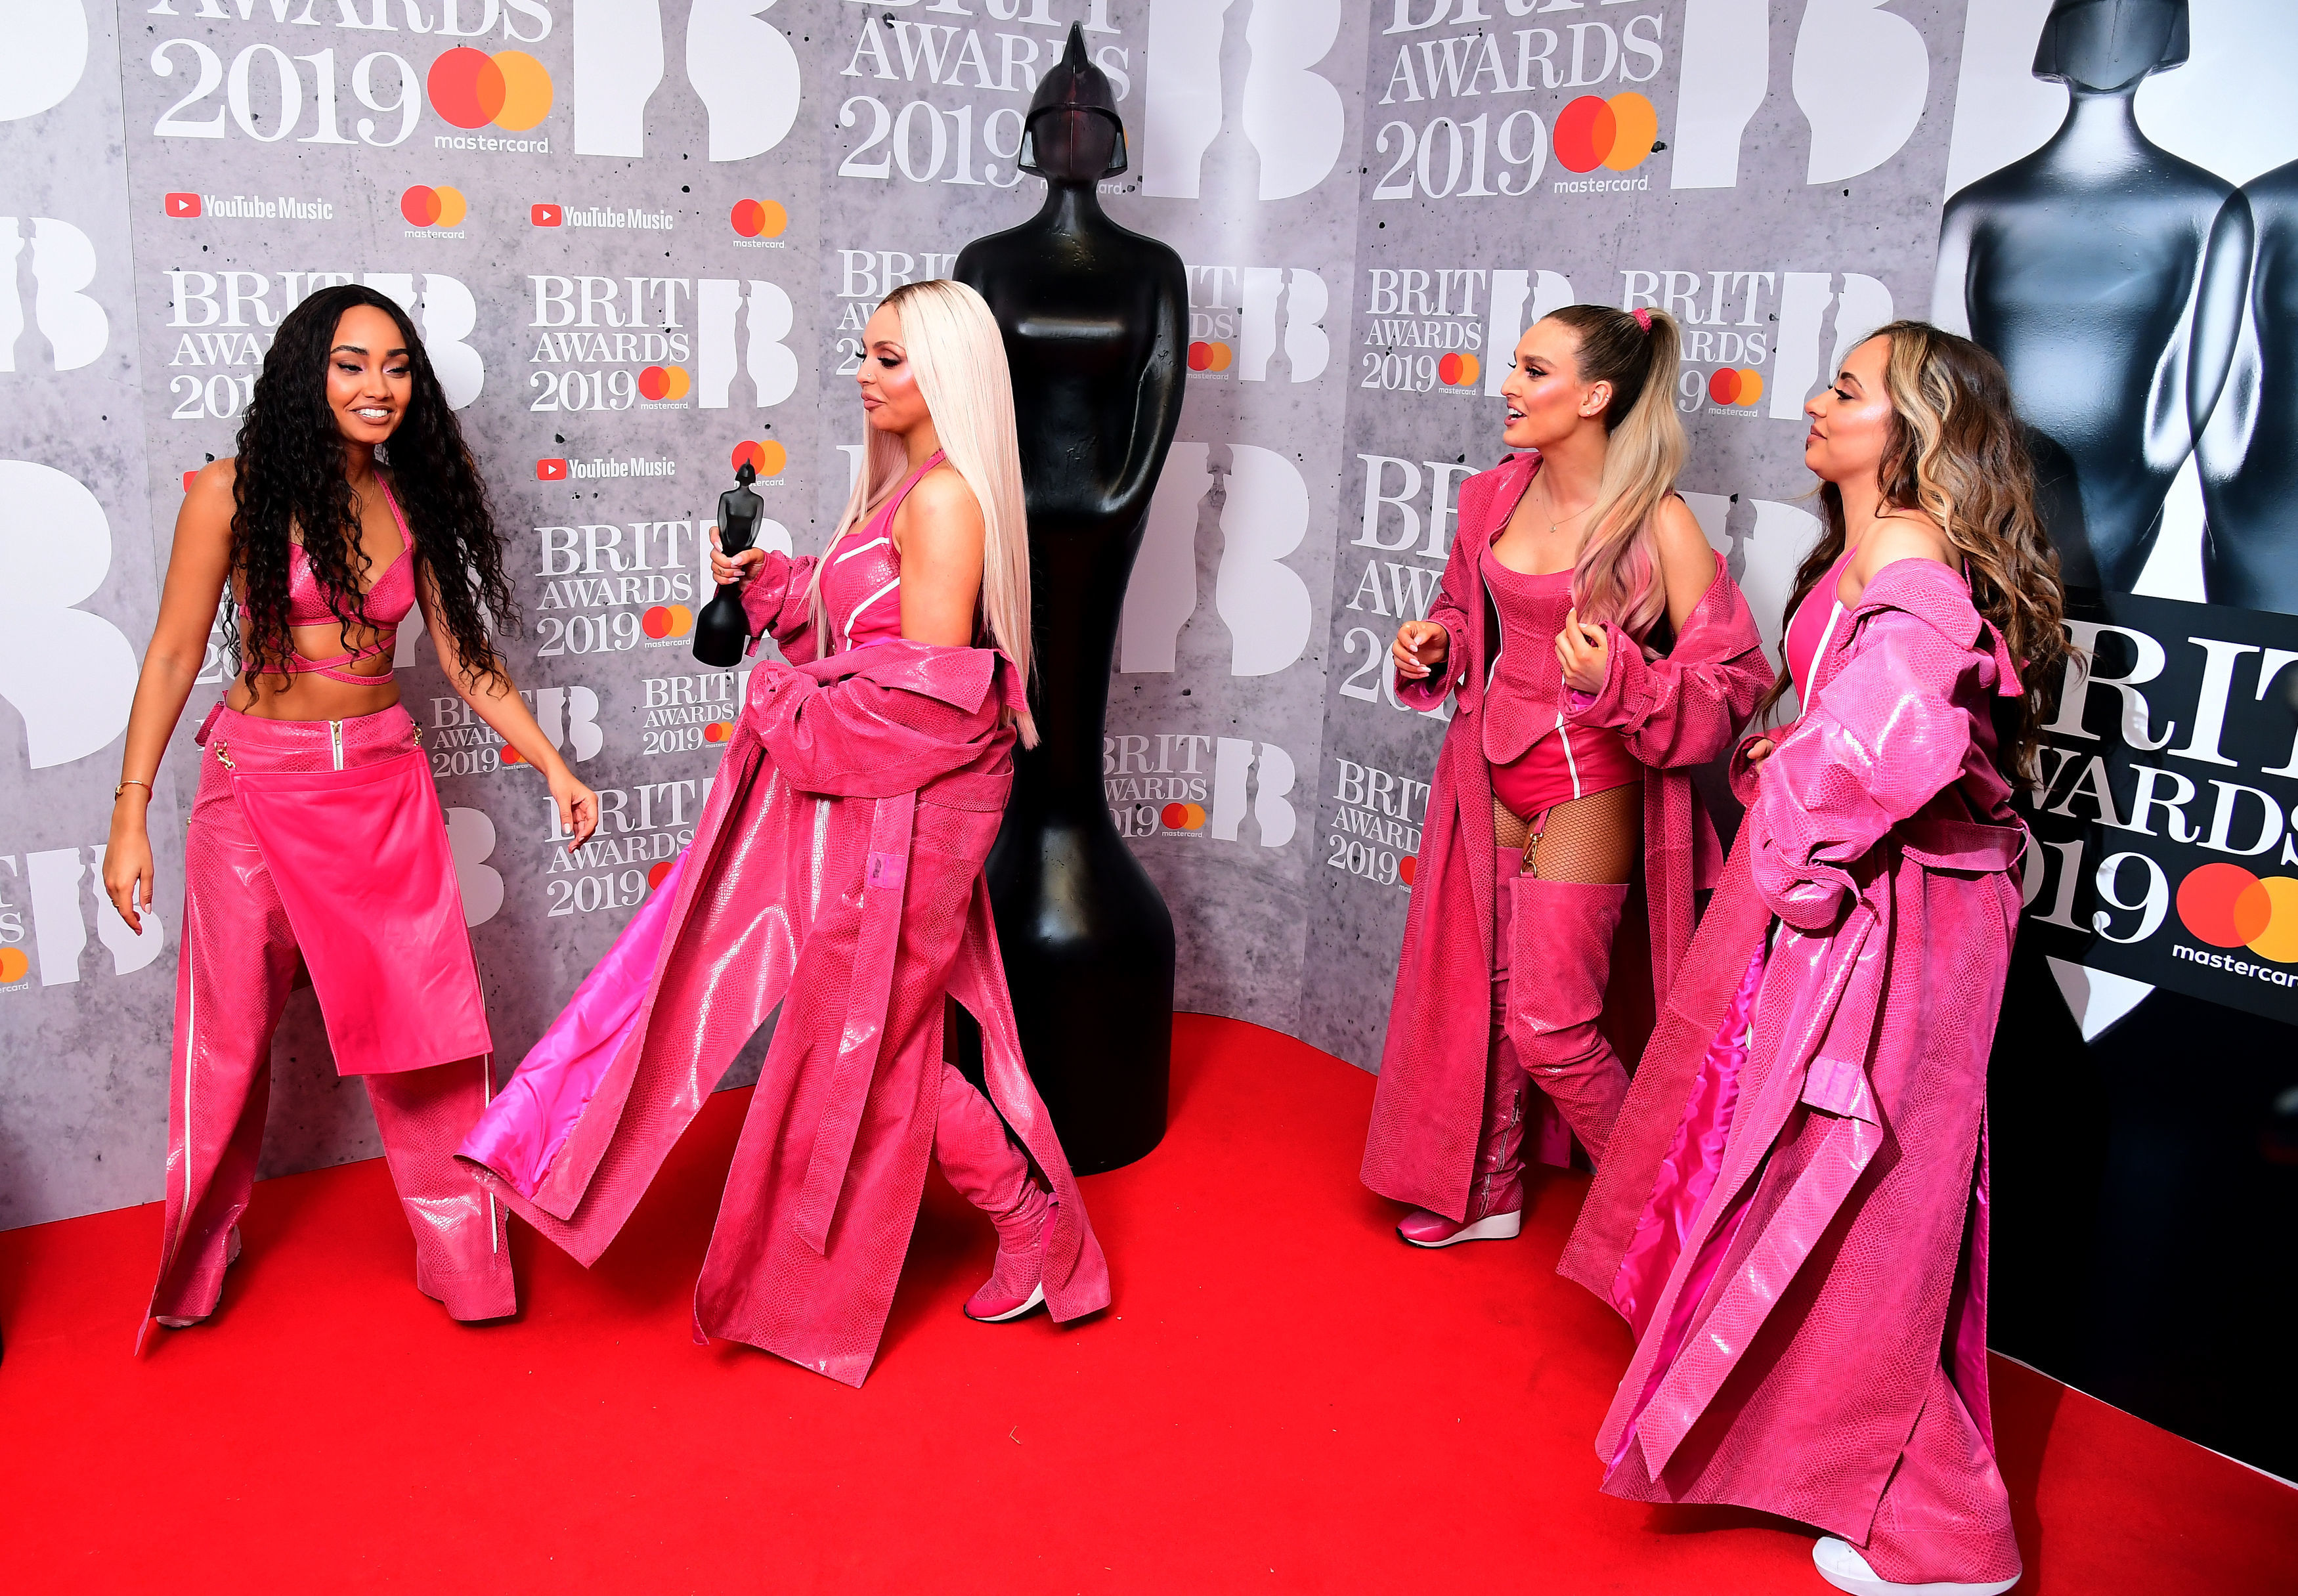 Leigh-Anne Pinnock, Jesy Nelson, Perrie Edwards and Jade Thirlwall of Little Mix with their Best British Video Brit Award